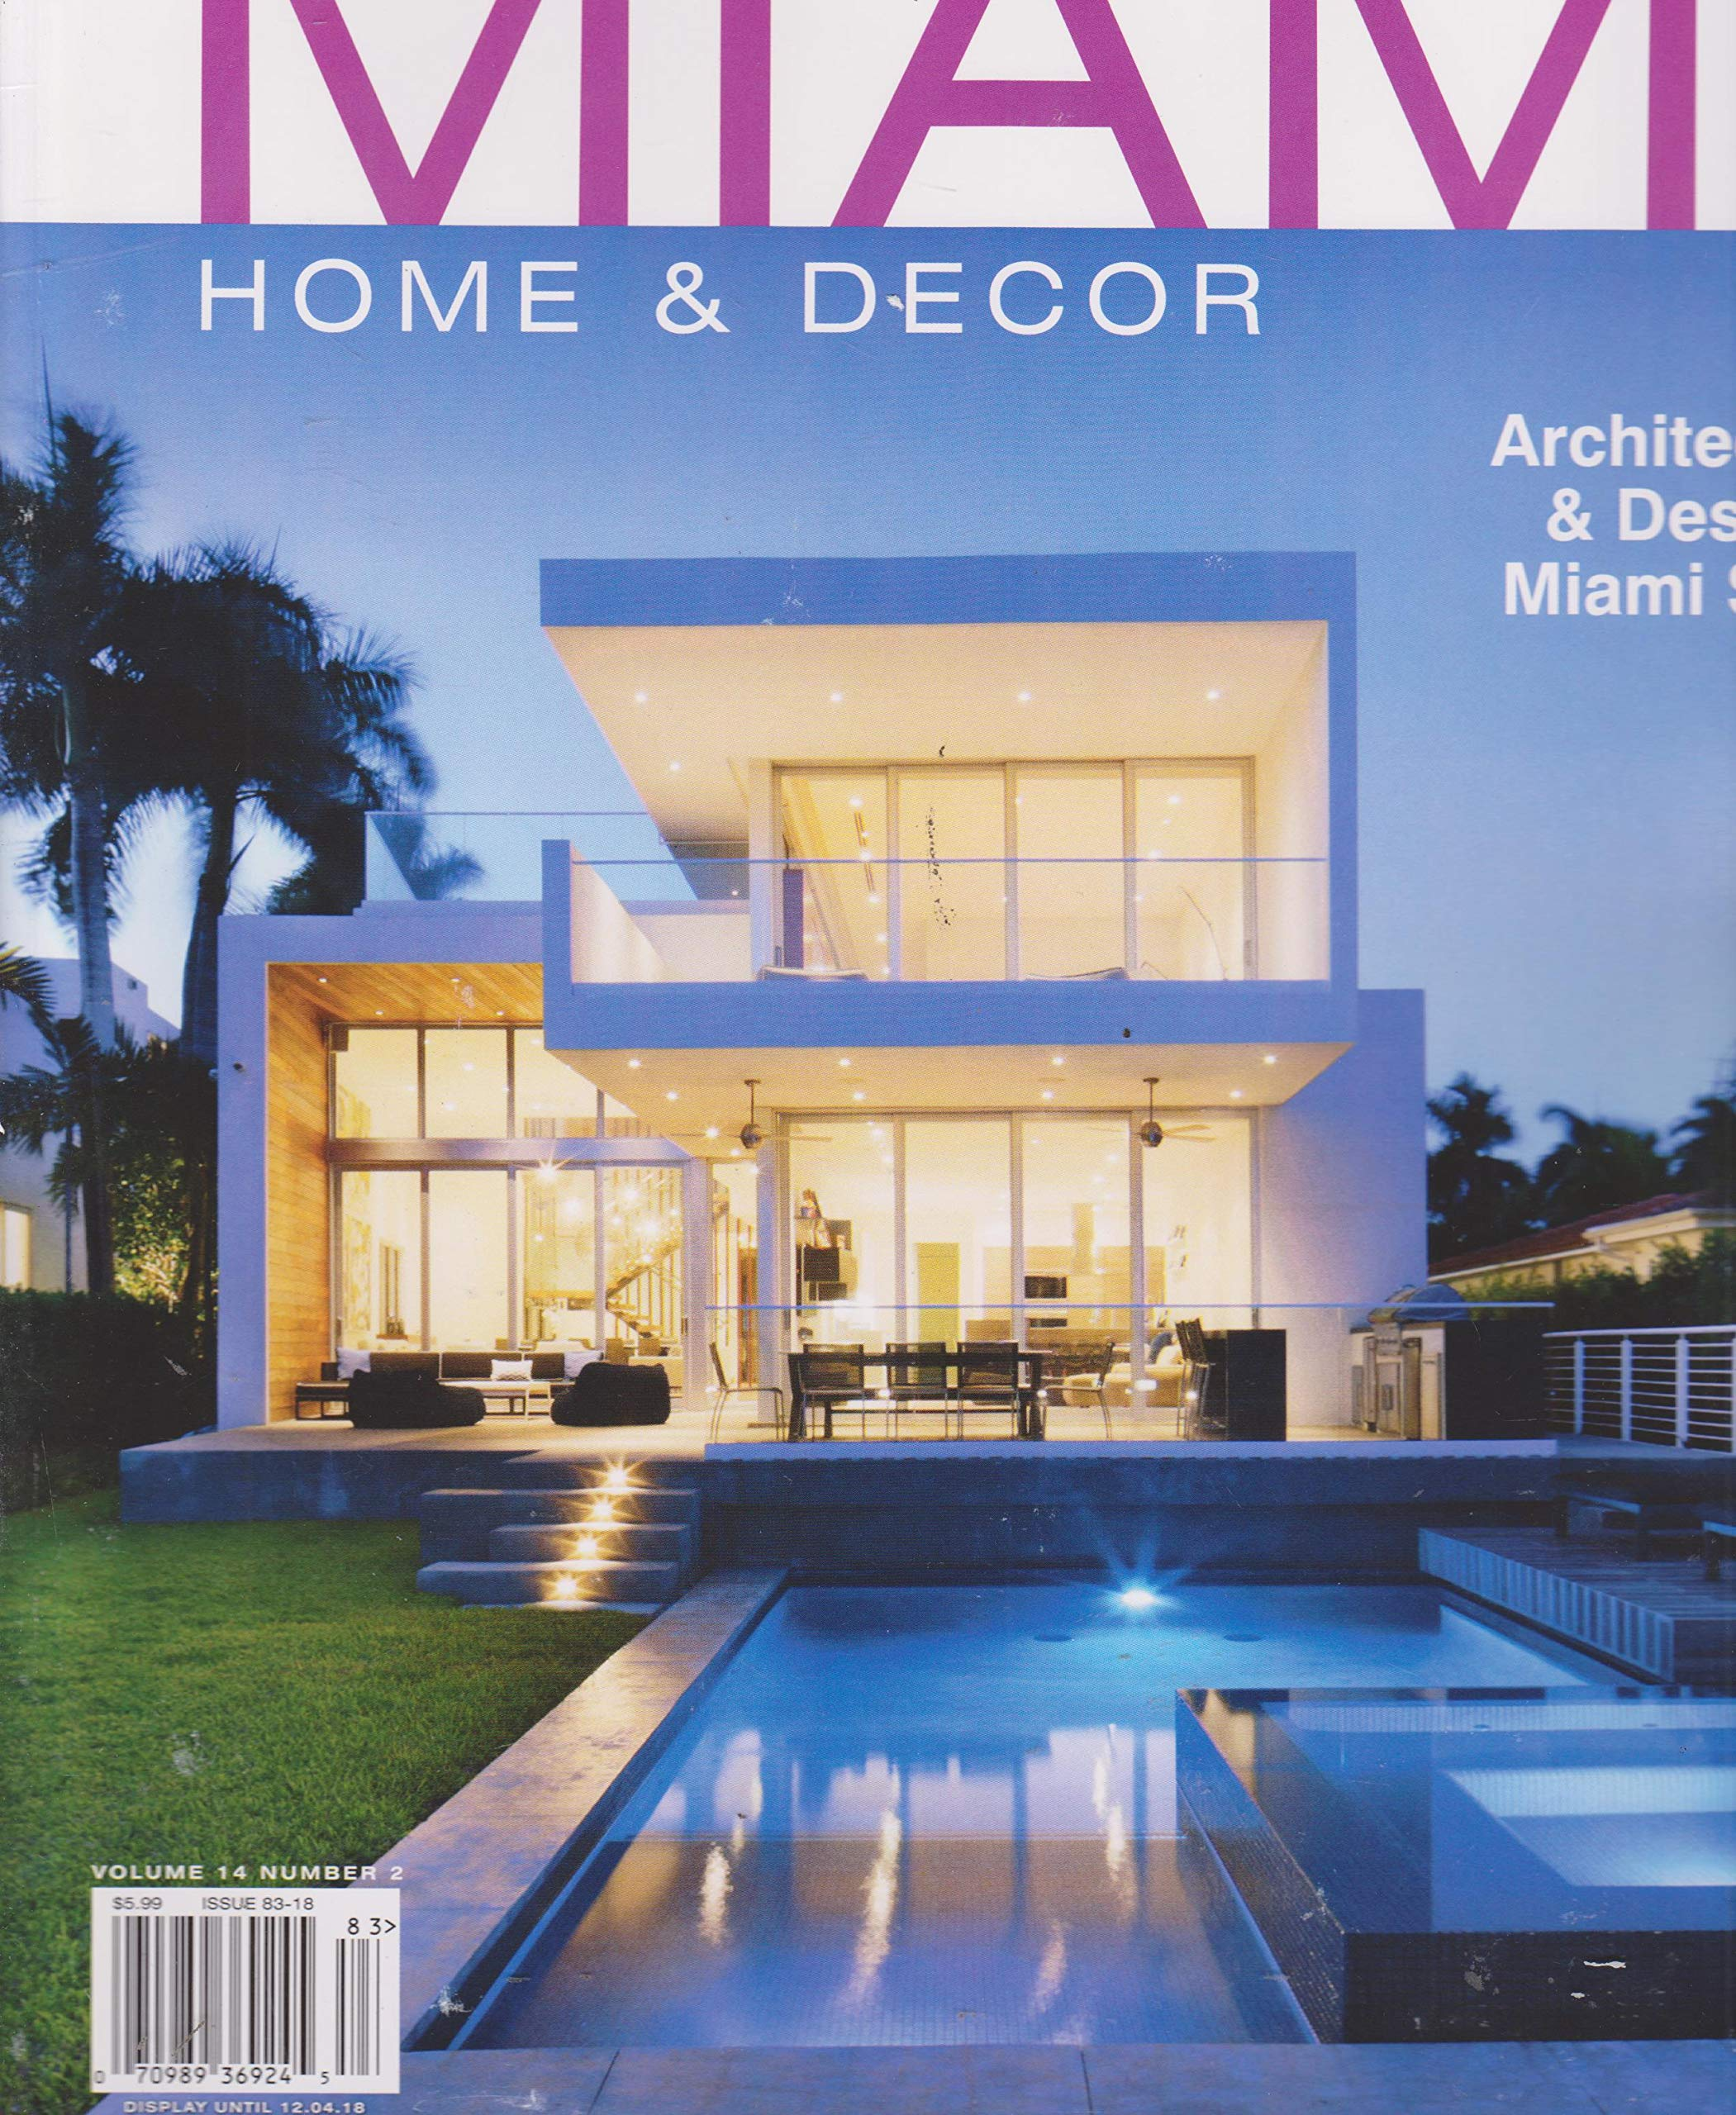 Florida Designs Miami Home Decor Magazine Summer Fall 2018 Volume 14 Number 2 Single Issue